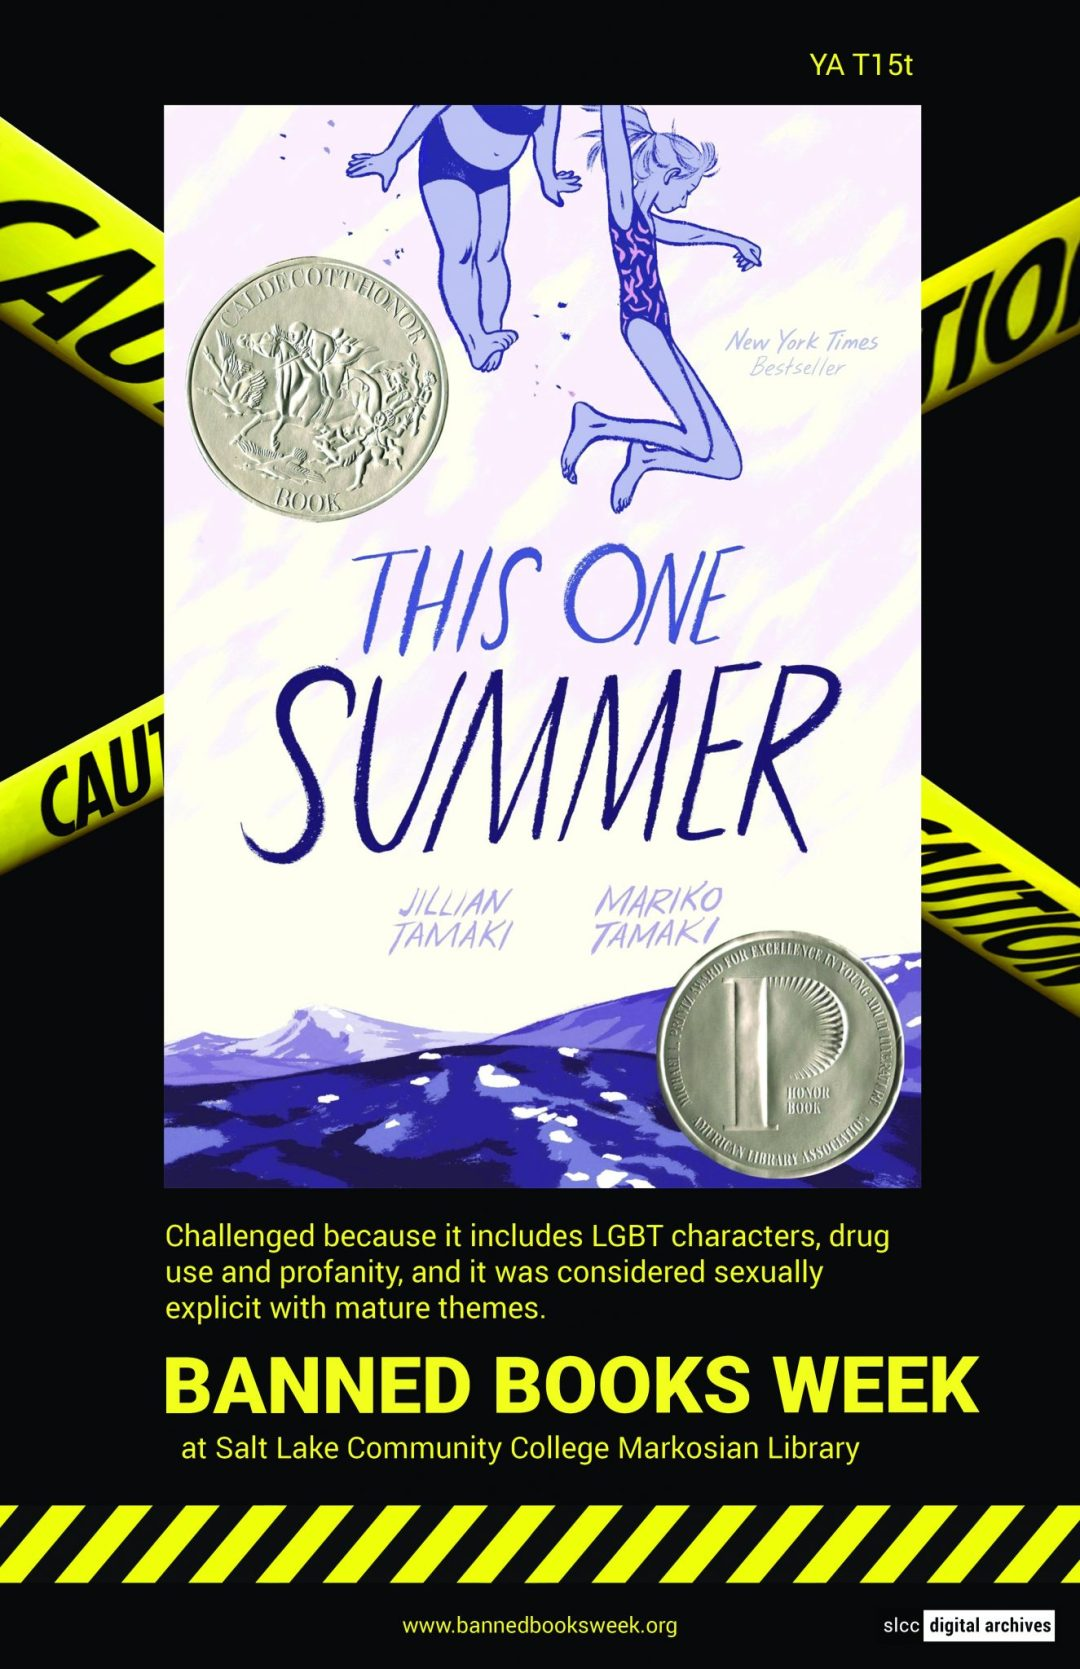 Banned Books Week Poster: This One Summer by Jillin Tamaki and Mariko Tamaki